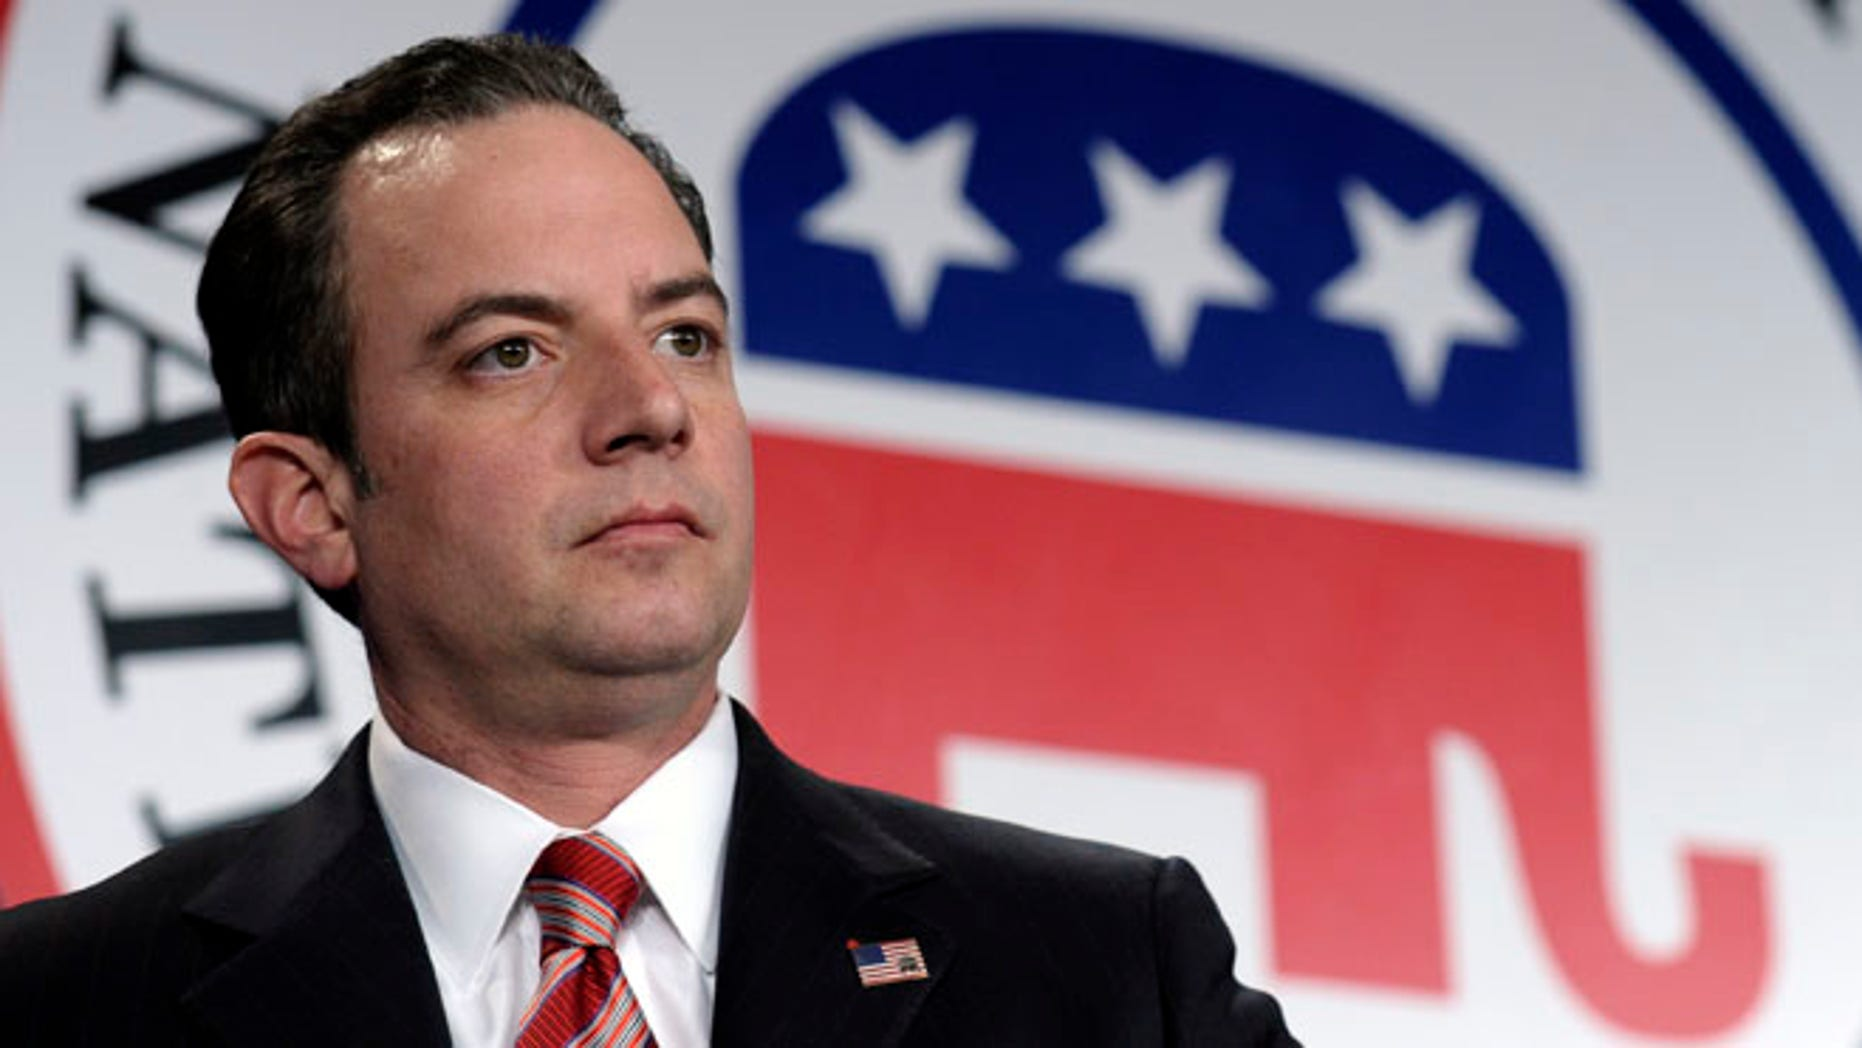 Jan. 24, 2014: Republican National Committee chairman Reince Priebus is seen at the RNC winter meeting in Washington.